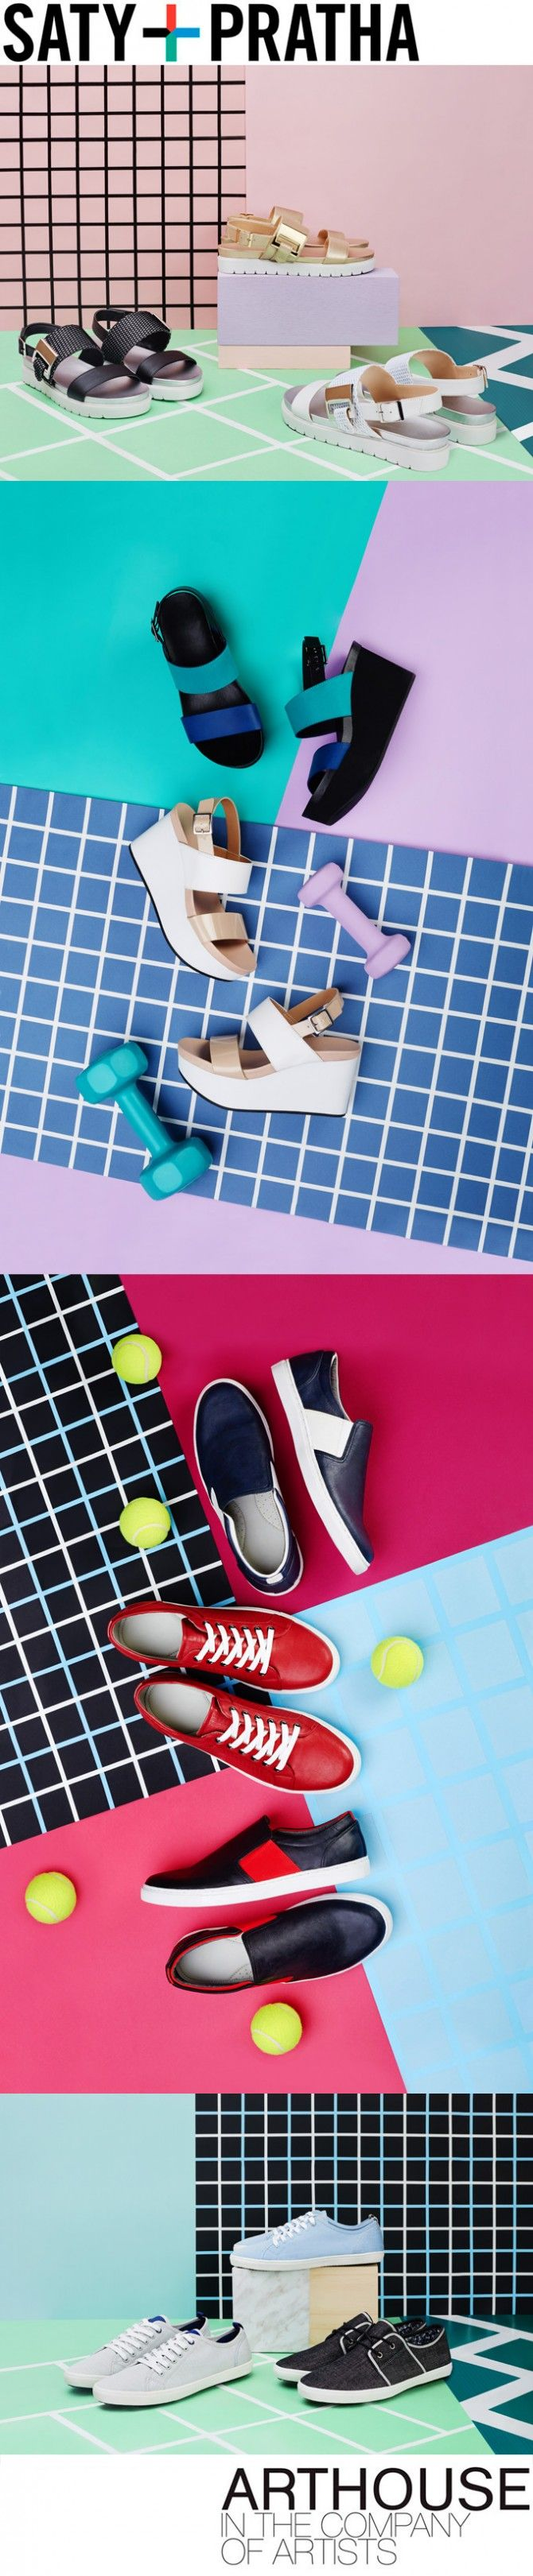 Saty+Pratha shoot Aldo's Call It Spring SS15 line. Featured here are a few images from the sporty spring collection!